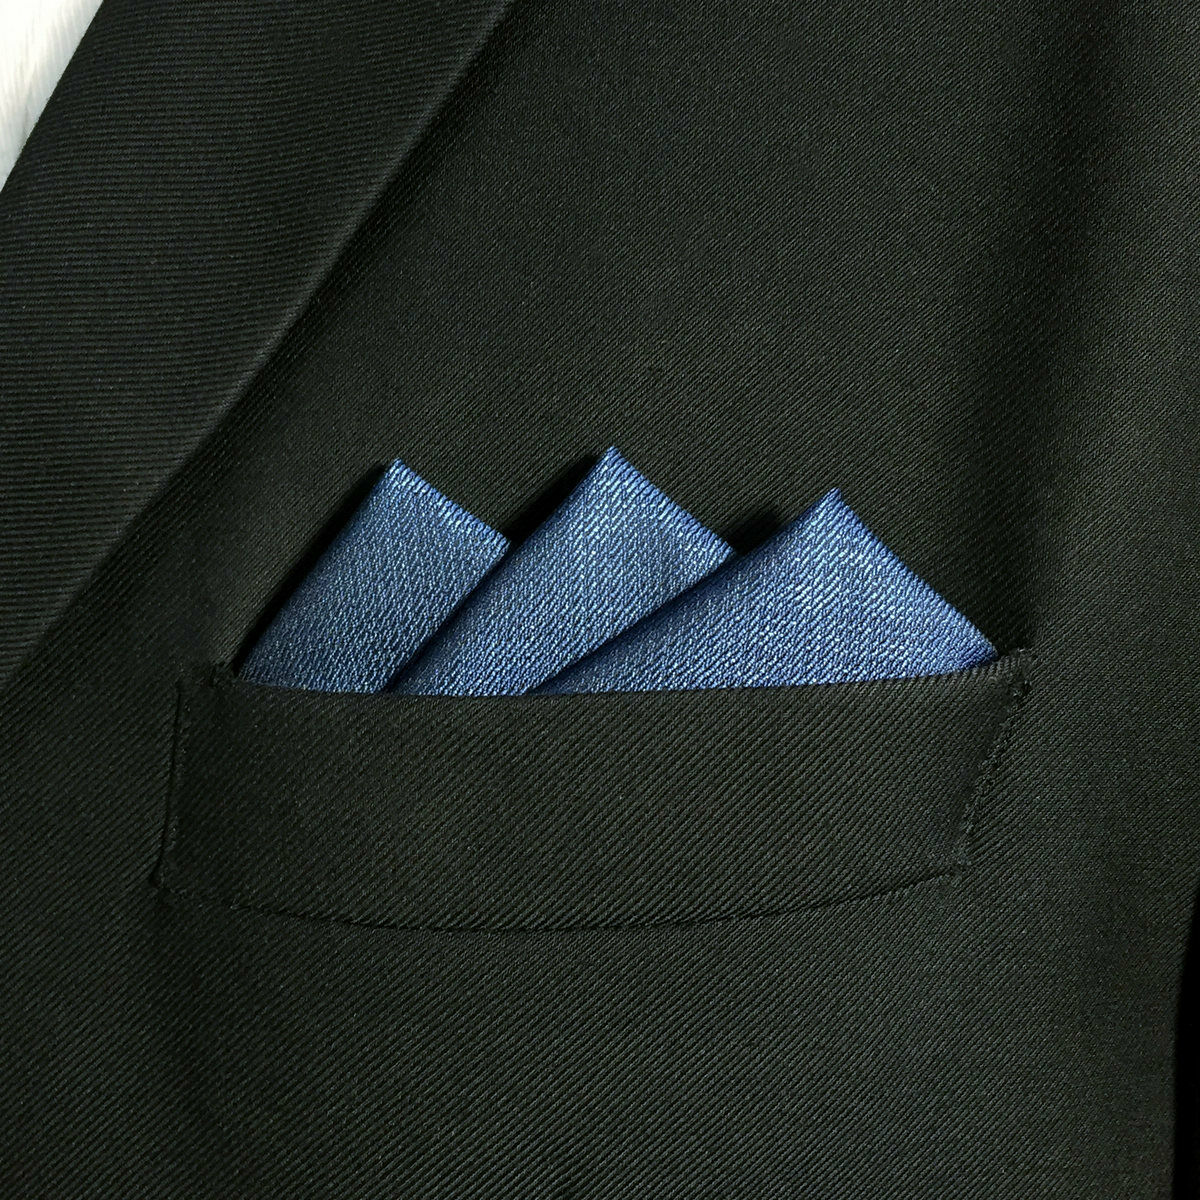 DH20 Fashion Solid Blue Pocket Square For Men 100% Silk Hanky Business